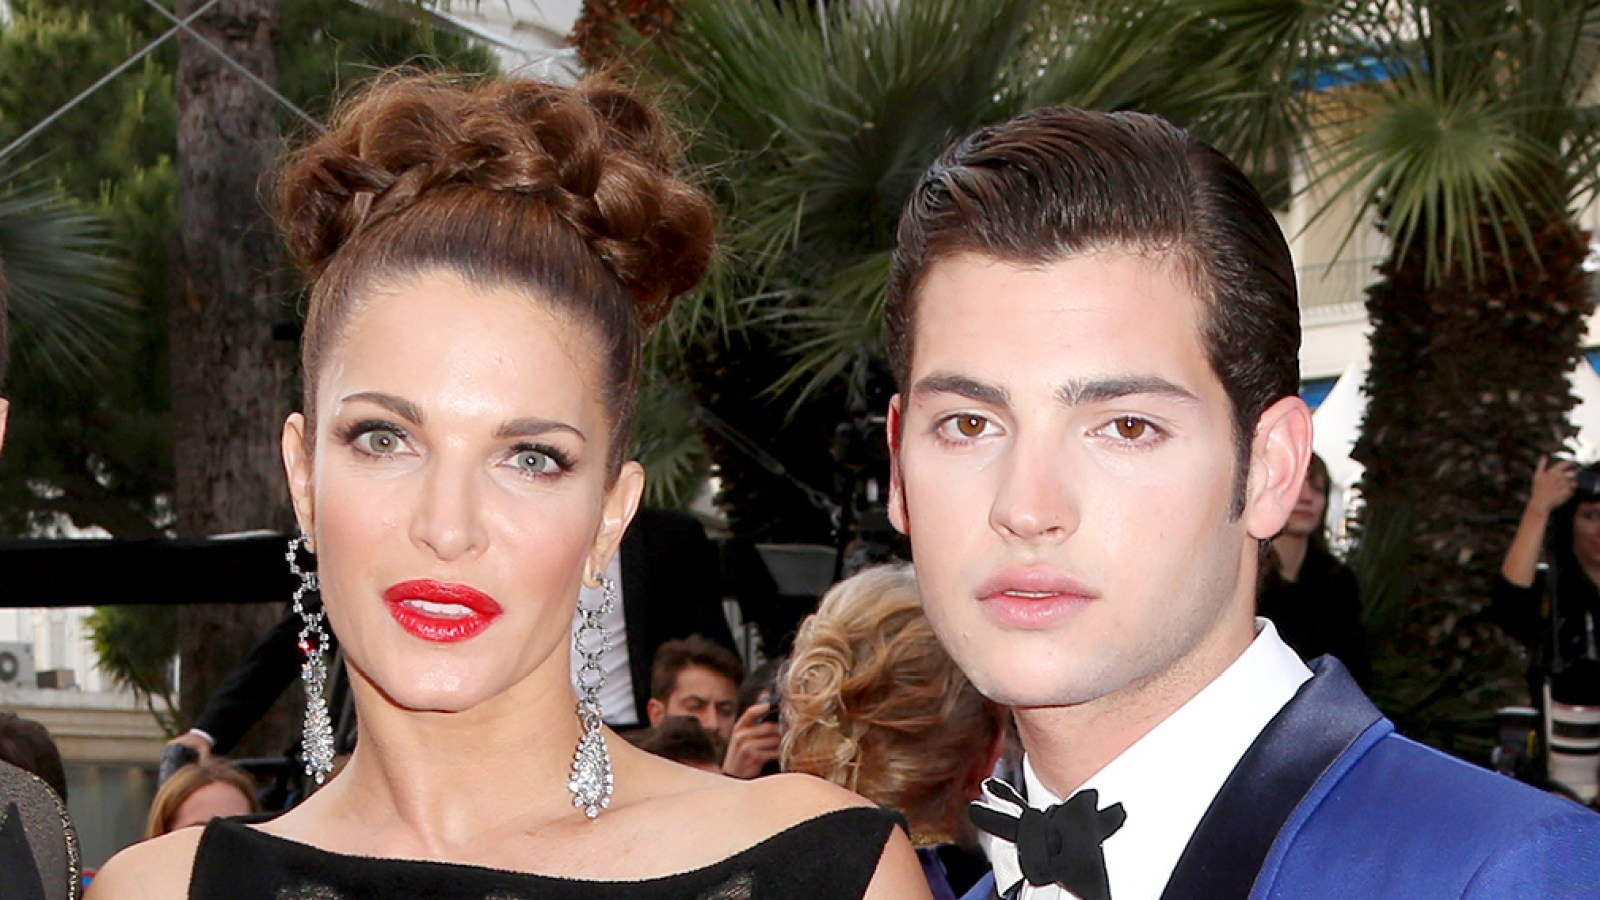 stephanie seymour s son peter brant jr has altercation with cop at